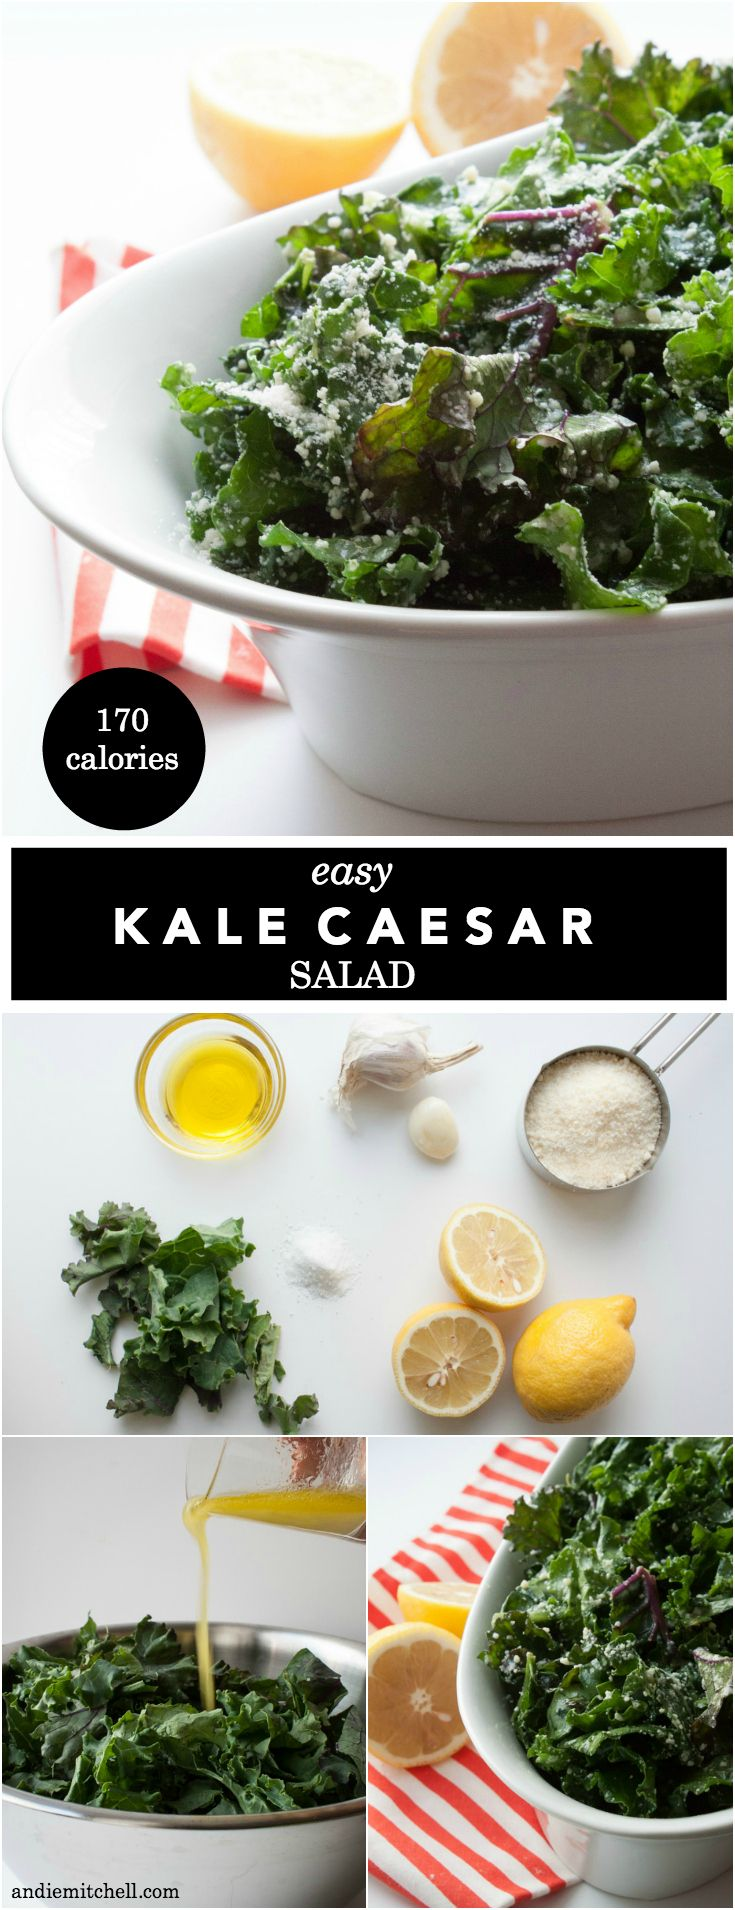 Easy No Massage Kale Caesar Salad Recipe - This recipe combines the heartiness of kale salad and the bright lemon parmesan flavor of caesar salad - with none of the fuss! It's easy and healthy!